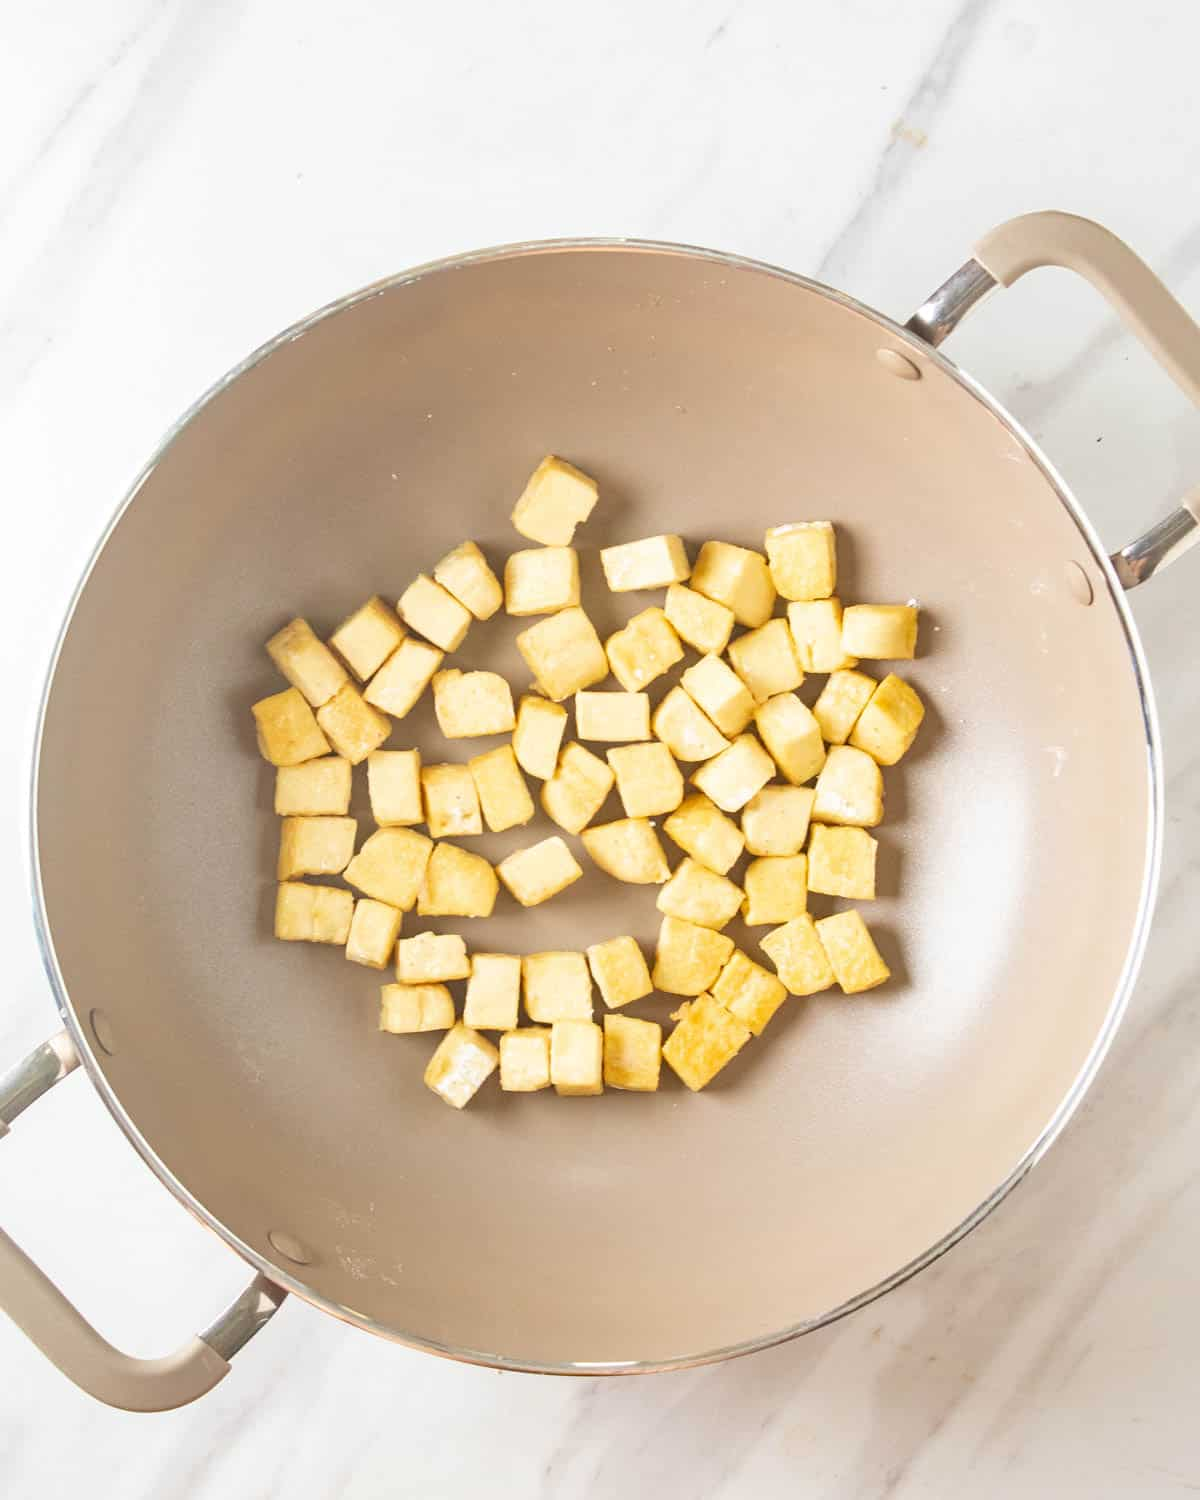 Pan frying tofu in a wok.